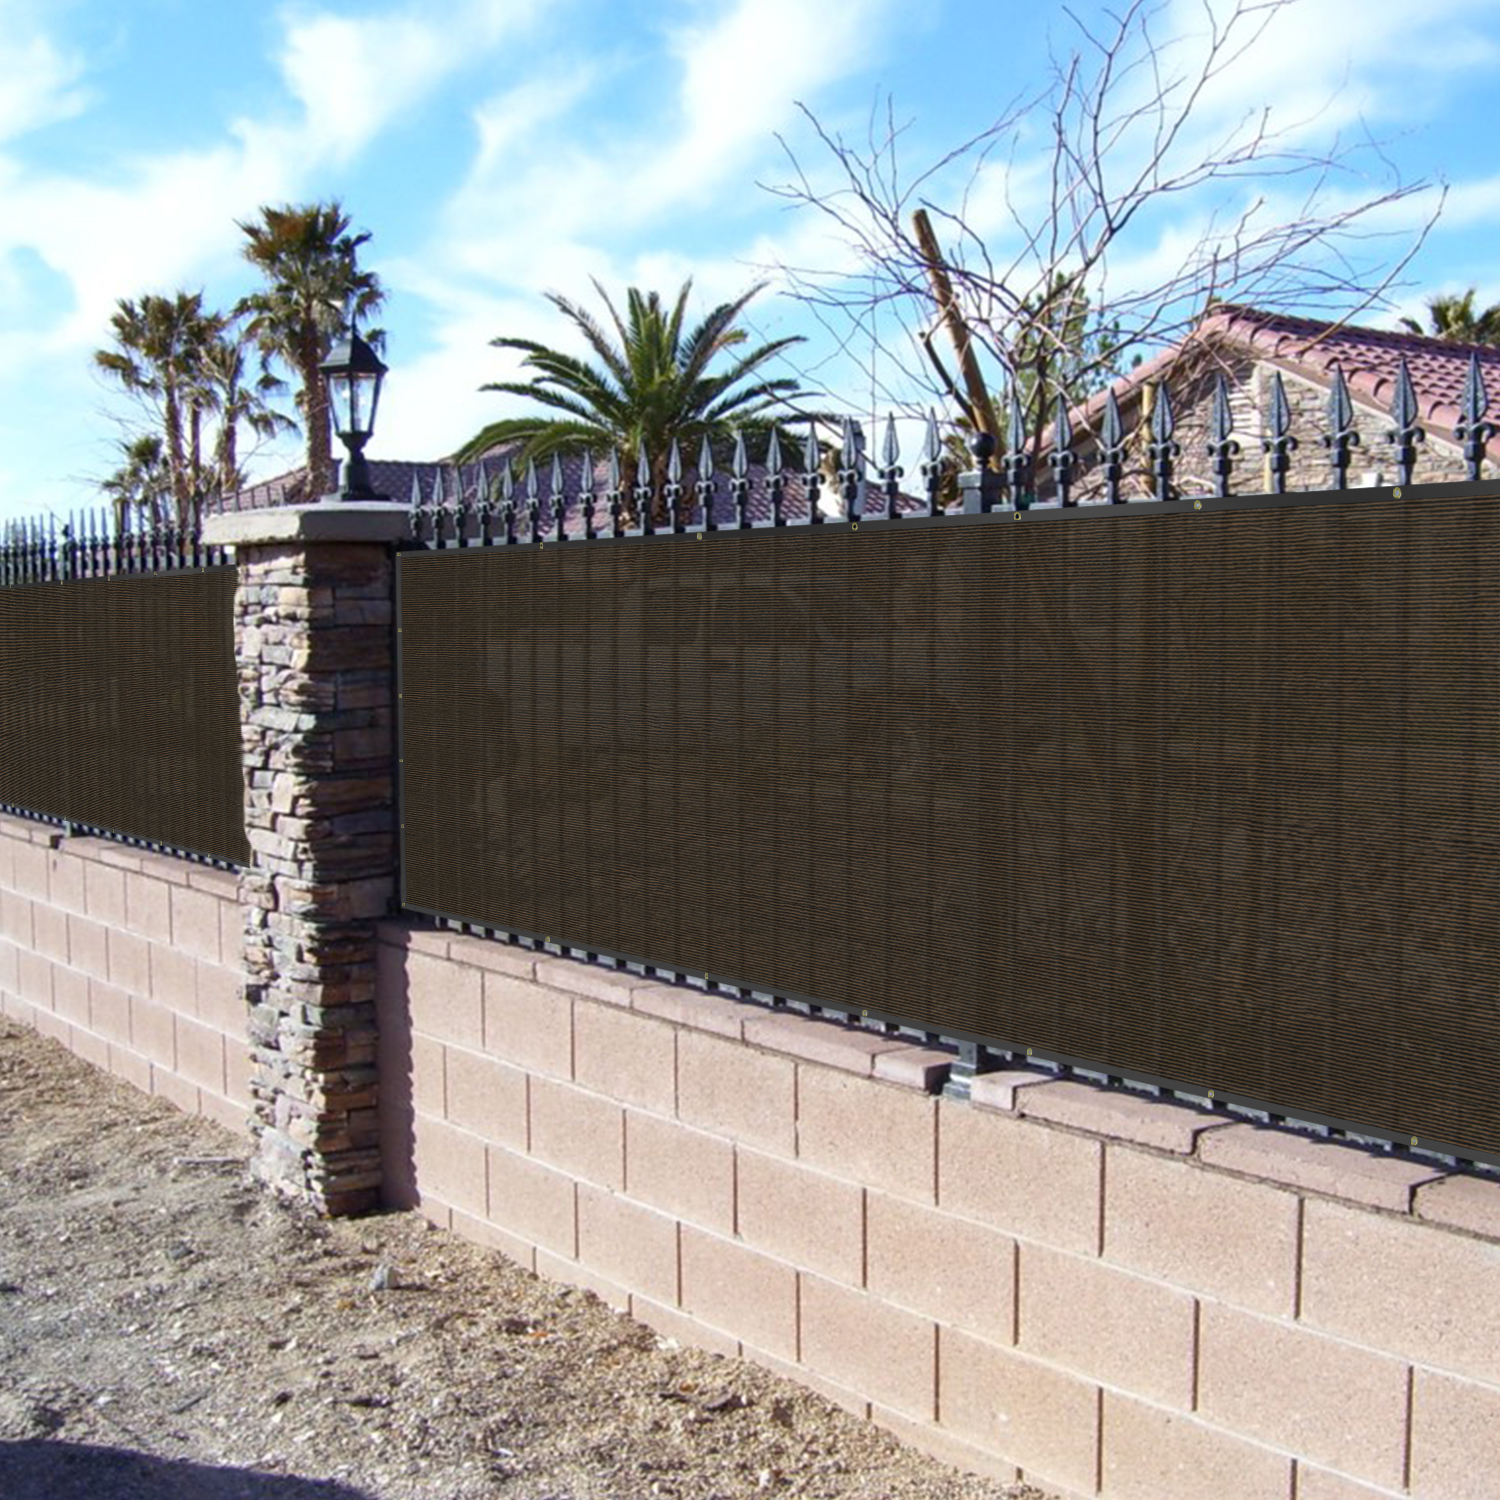 Bouya Brown Privacy Fence Screen 4 X 50 Heavy Duty For Chain Link Commercial Outdoor Shade Windscreen Mesh Fabric With Br Gromment